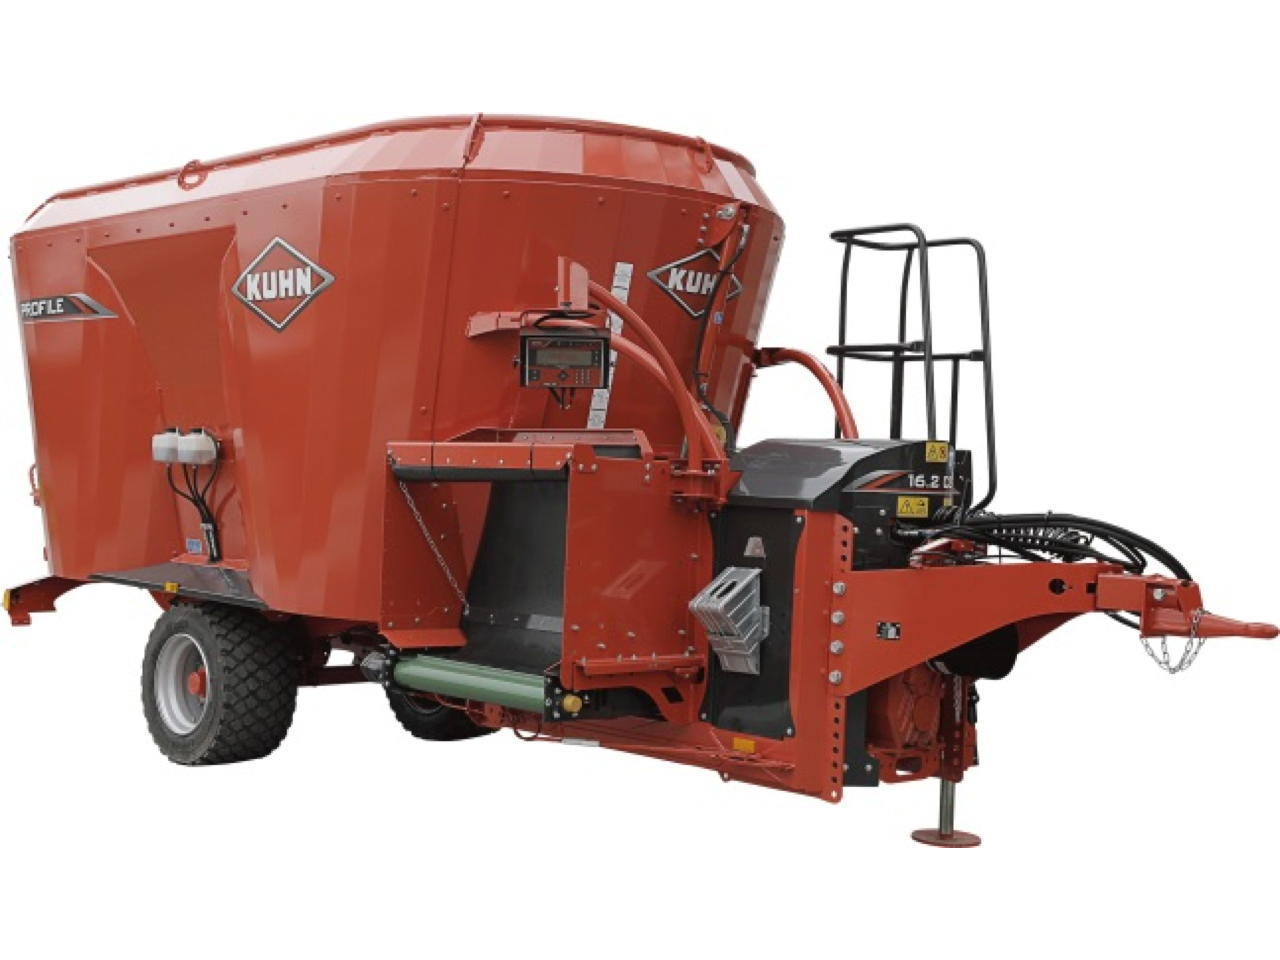 Kuhn Profile 2 CS Profile 18.2 CS